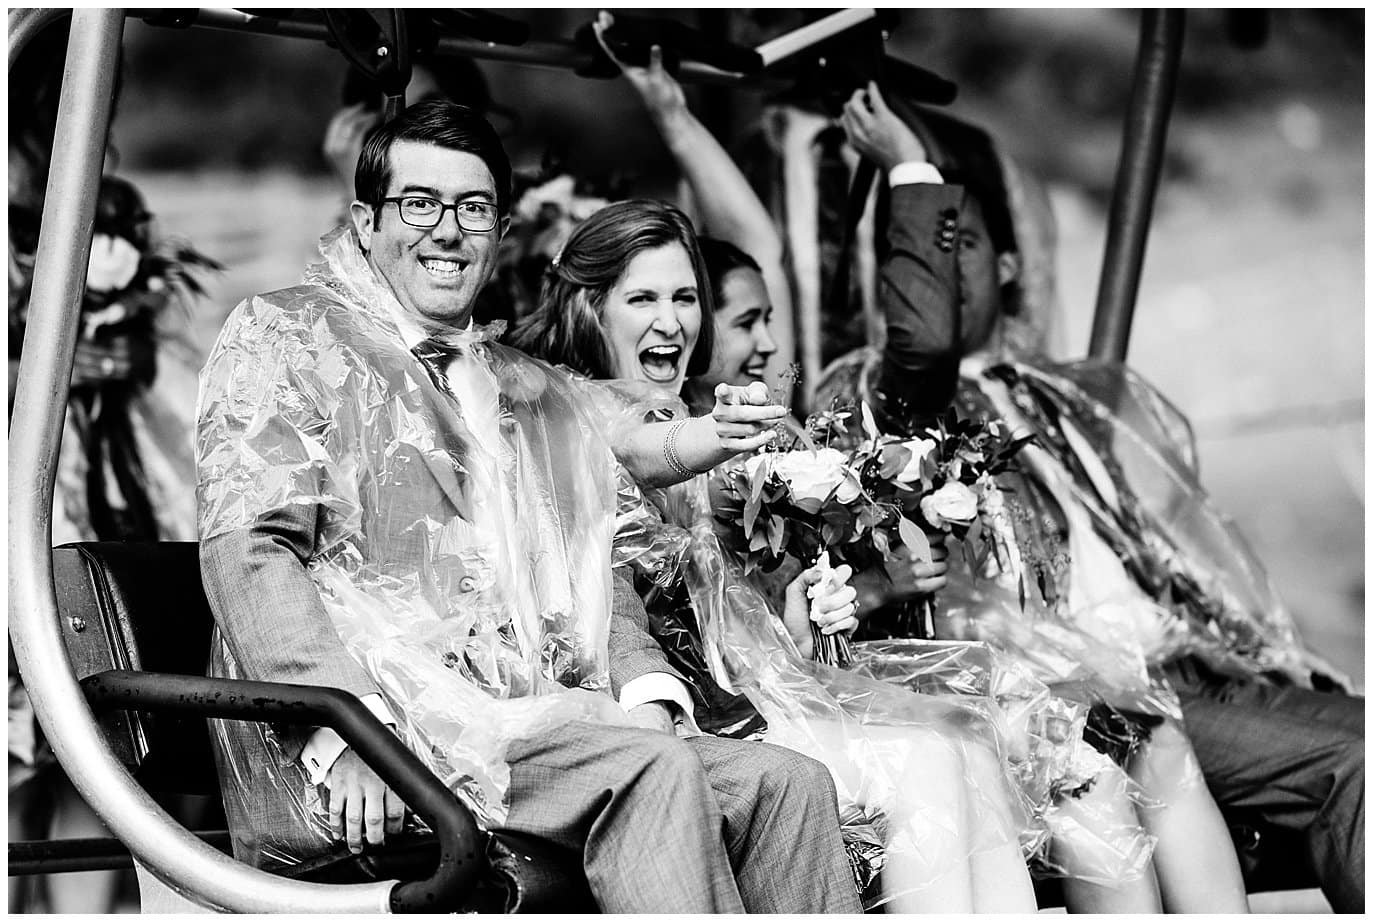 wedding party boarding chair lift to top of Arapahoe Basin at Arapahoe Basin Black Mountain Lodge Wedding by Arapahoe Basin Wedding Photographer Jennie Crate